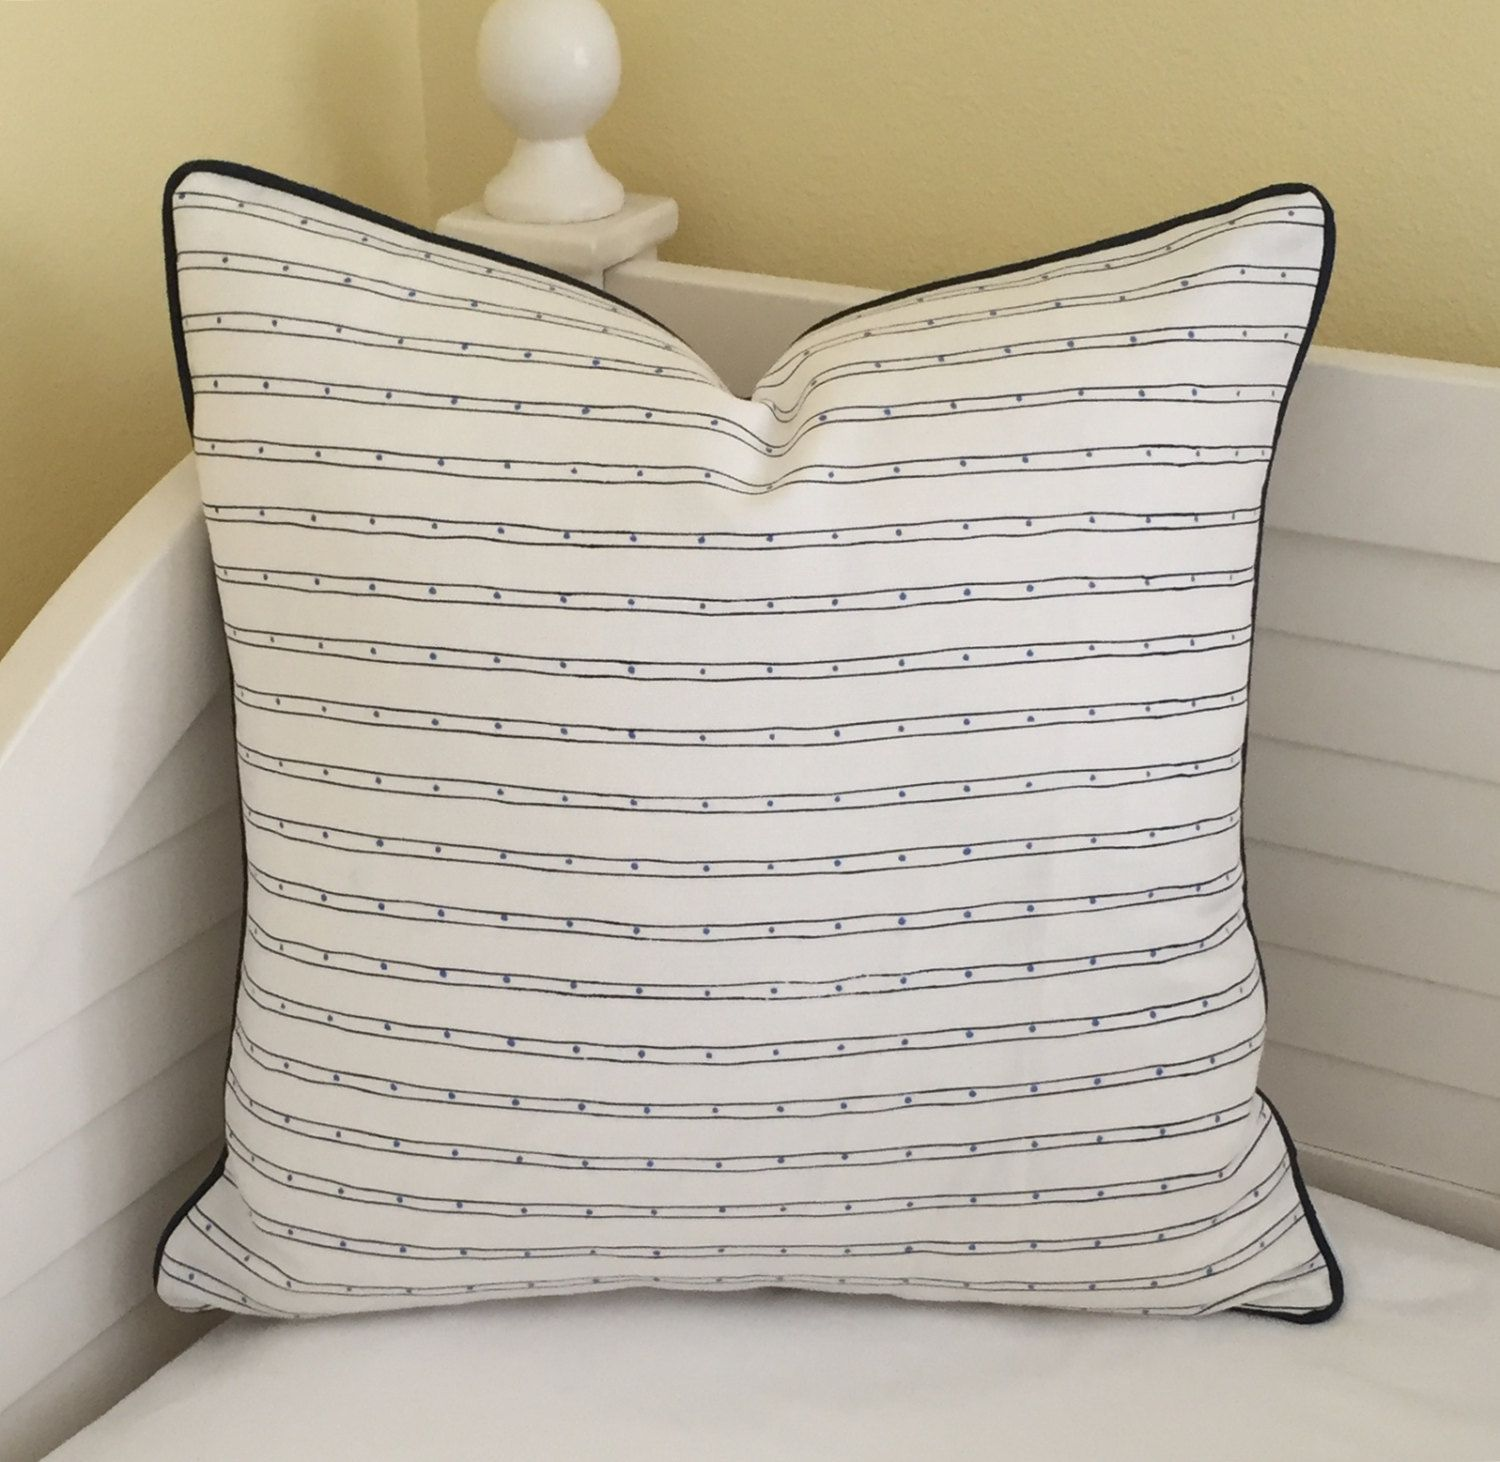 Quadrille China Seas Adam Campbell Soho Designer Pillow Cover with Navy Piping - Square, Lumbar and Euro Sizes by SewSusieDesigns on Etsy